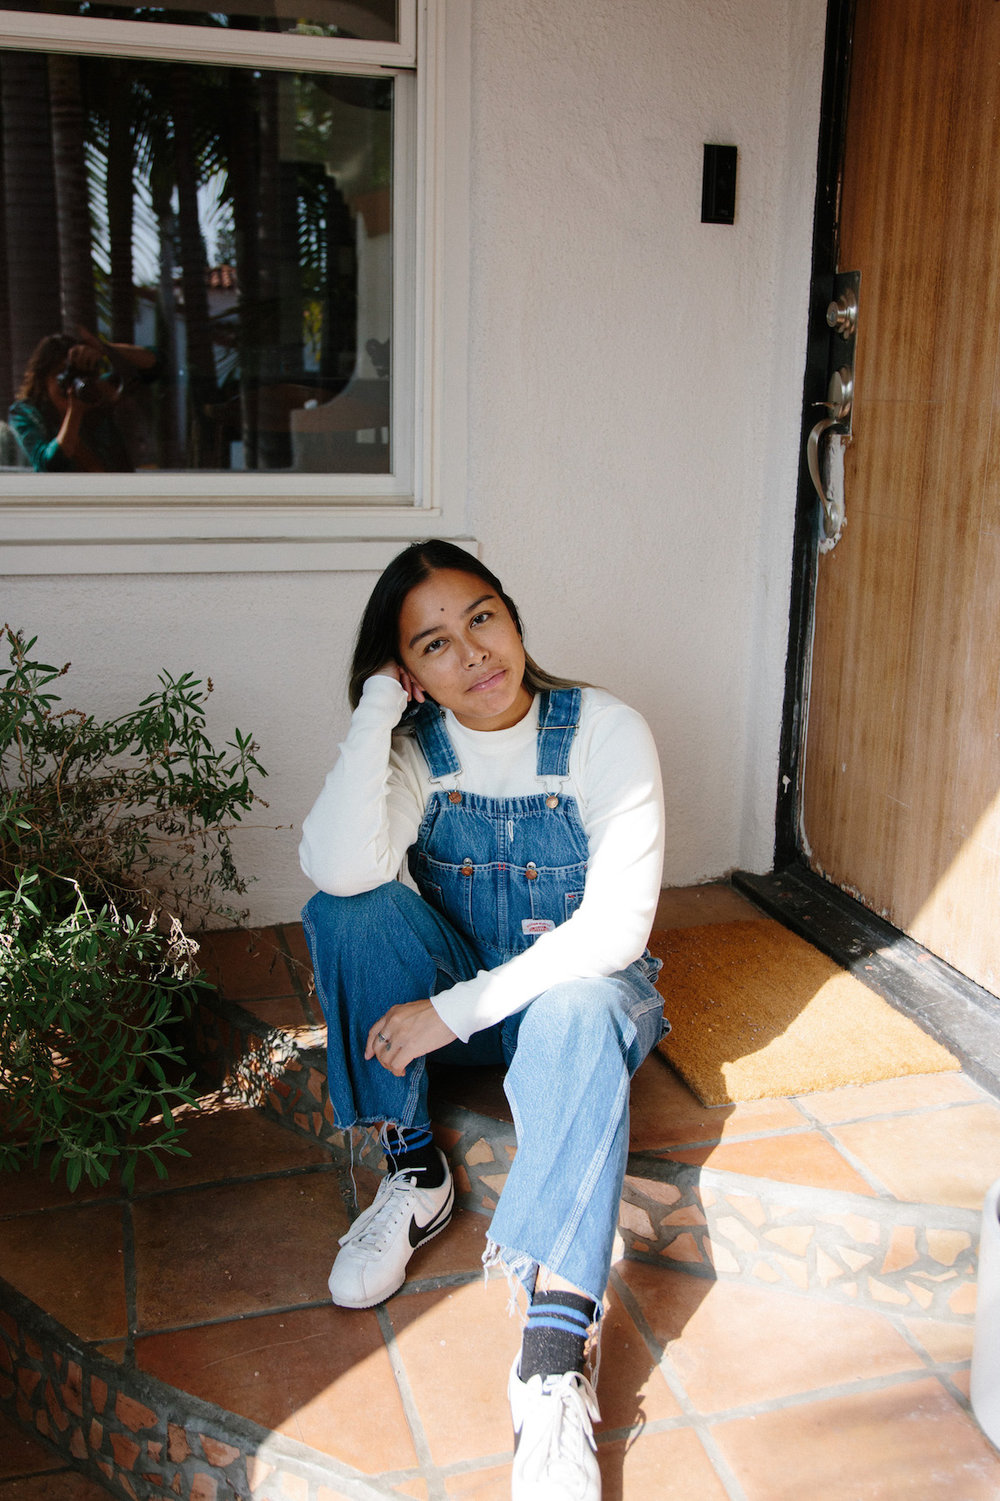 Vintage overalls outfit - A Week Of Super-Chill Conscious Fashion With Isadora Alvarez, Founder Of Back Beat Rags on The Good Trade